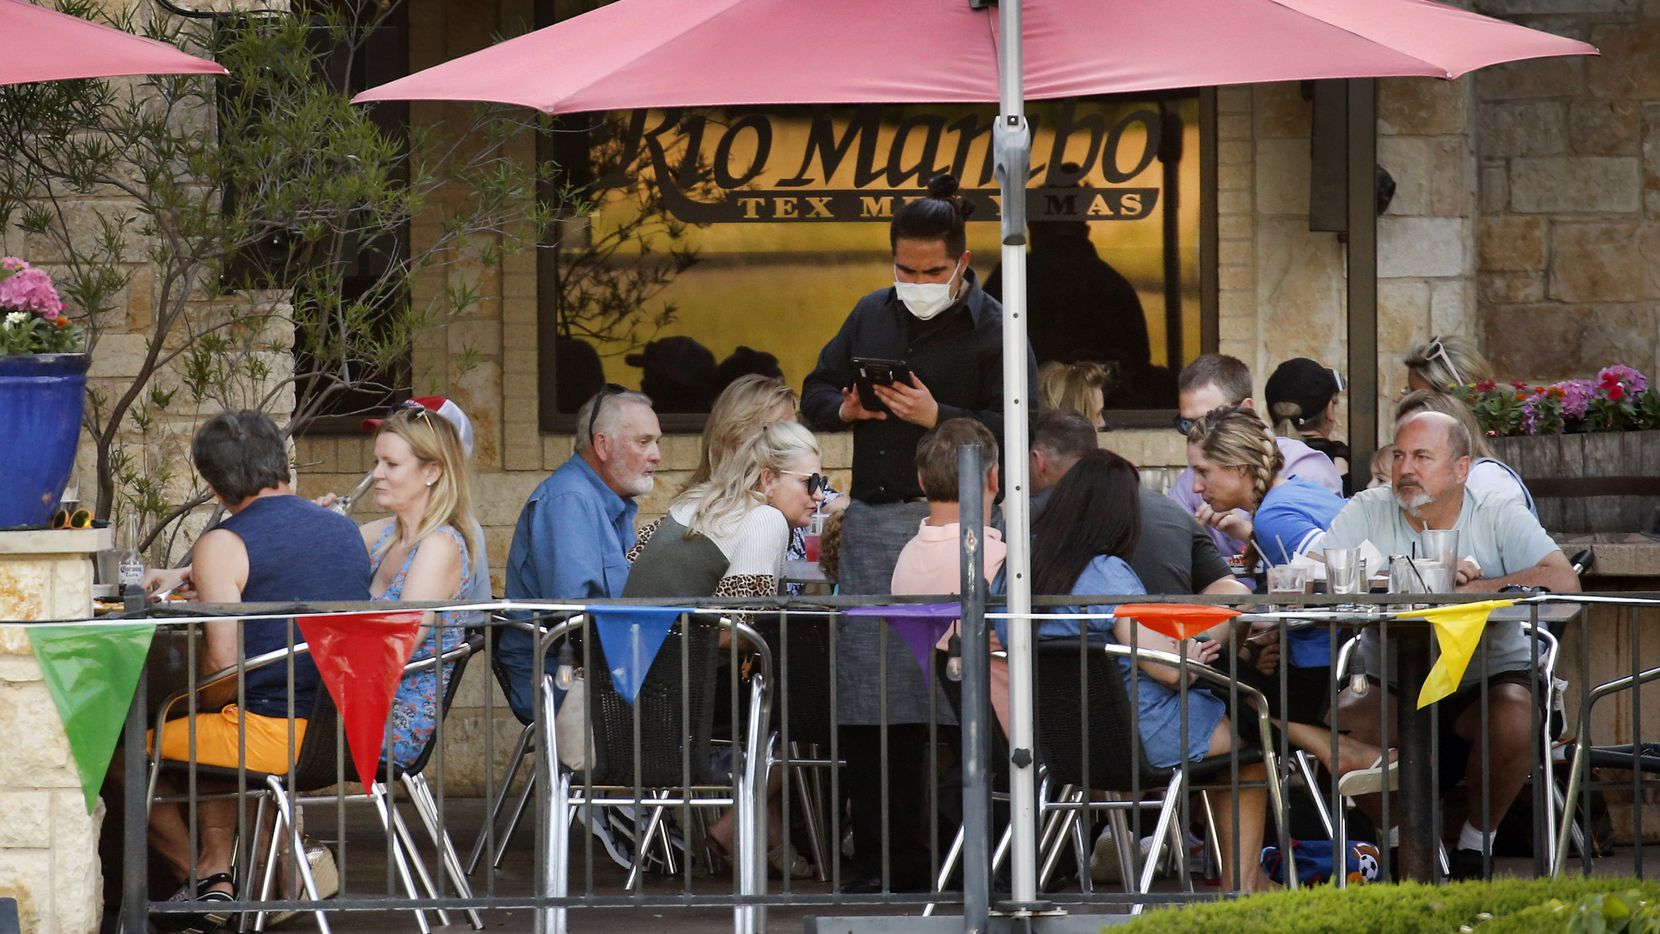 "On the first day of restaurants outdoor patios being reopened in Colleyville, Texas ""so long as physical distancing is maintained between tables,"" a waiter wearing a face mask takes orders from diners eating on the outdoor patio at Rio Mambo Tex Mex in Colleyville, Texas, Friday, April 24, 2020. As reopening continues, the city is now backing two programs to help small businesses in Colleyville promote themselves and bring back customers. (Tom Fox/The Dallas Morning News)"